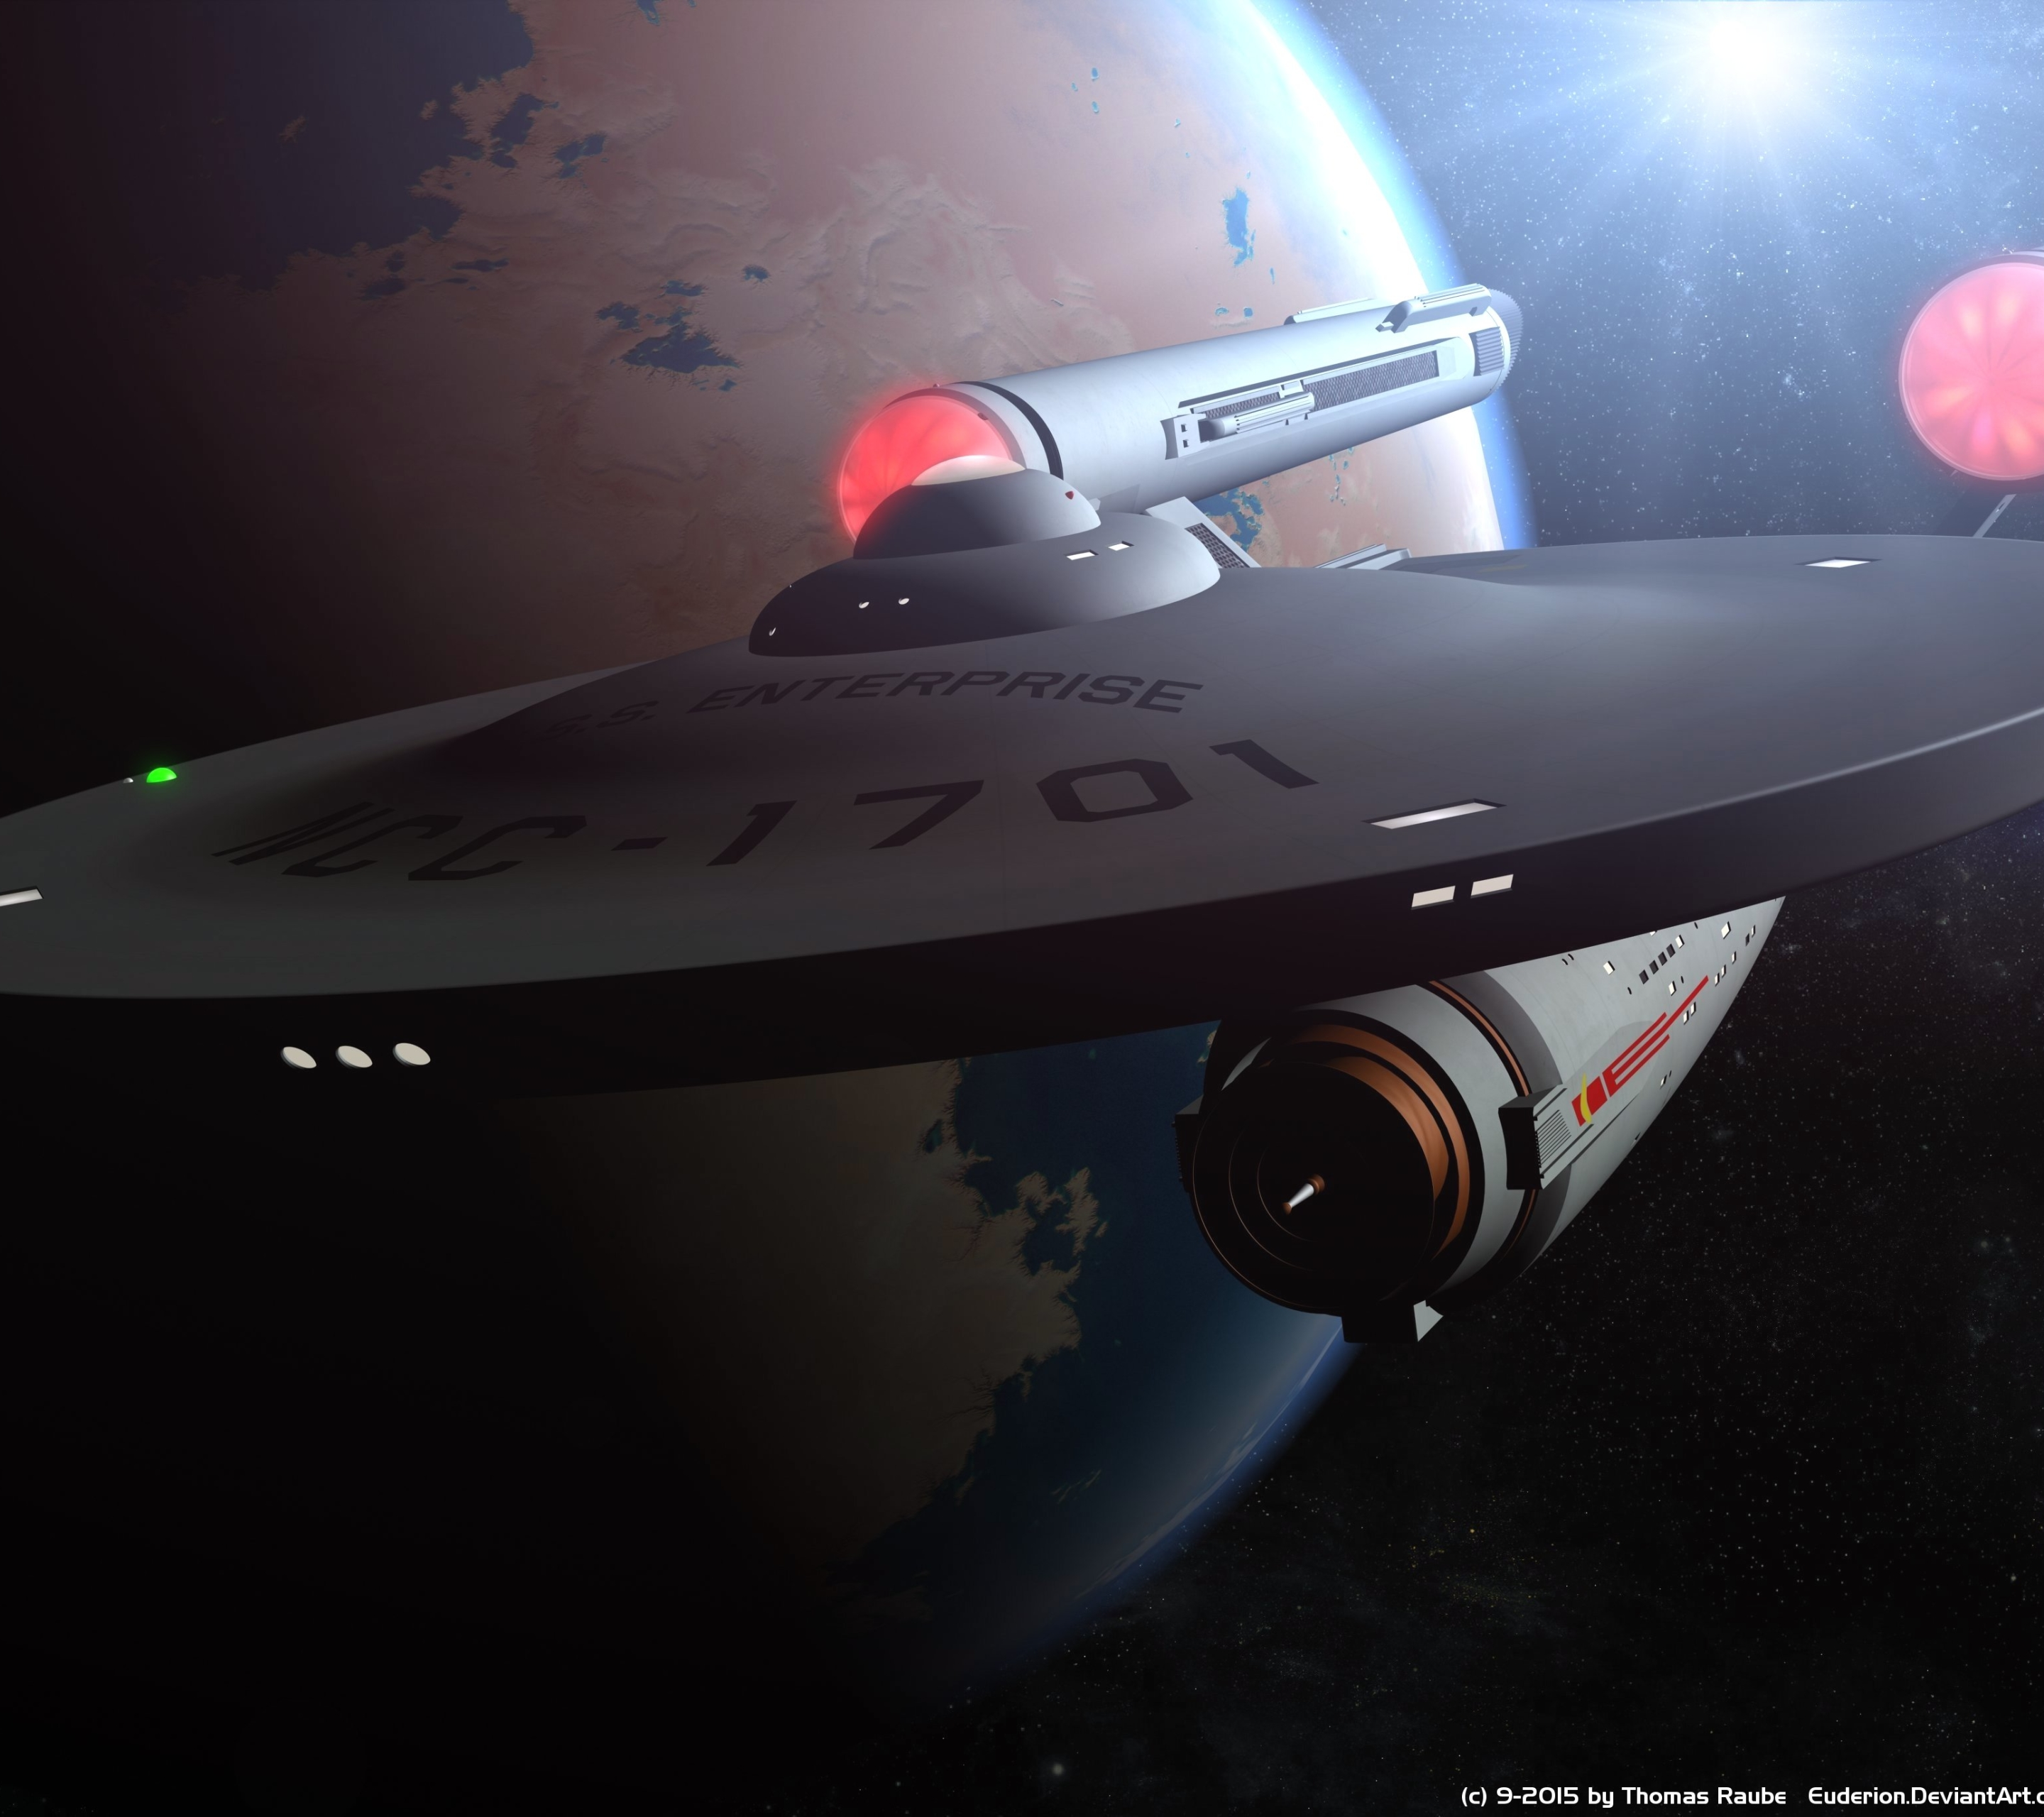 Tv Show Star Trek The Original Series 2880x2560 Wallpaper Id